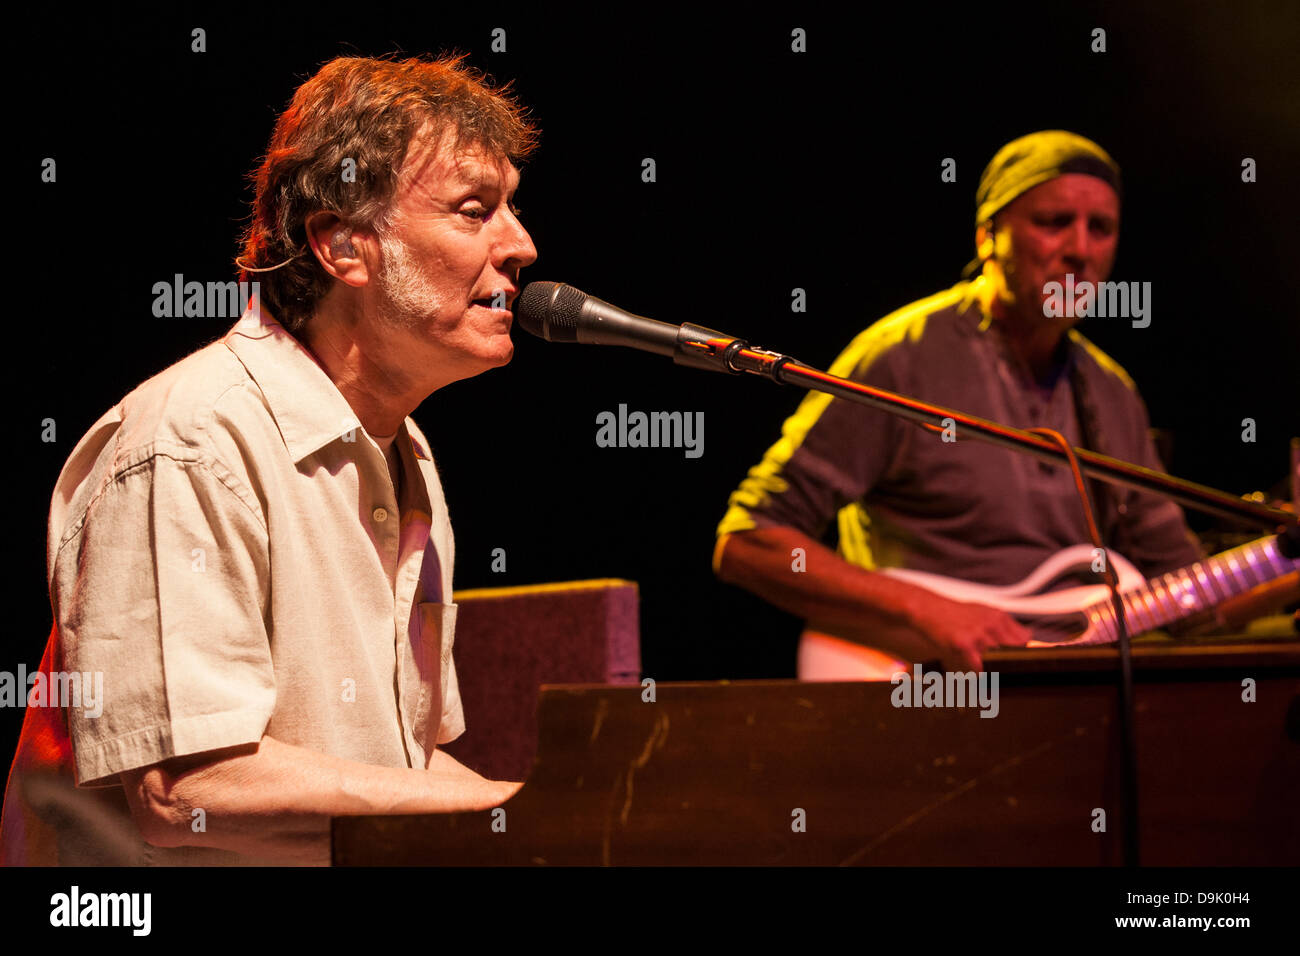 London, UK. 20th June, 2013. Steve Winwood at O2 Shepherd's Bush Empire, London 20th June 2013 Credit:  Lucia - Stock Image